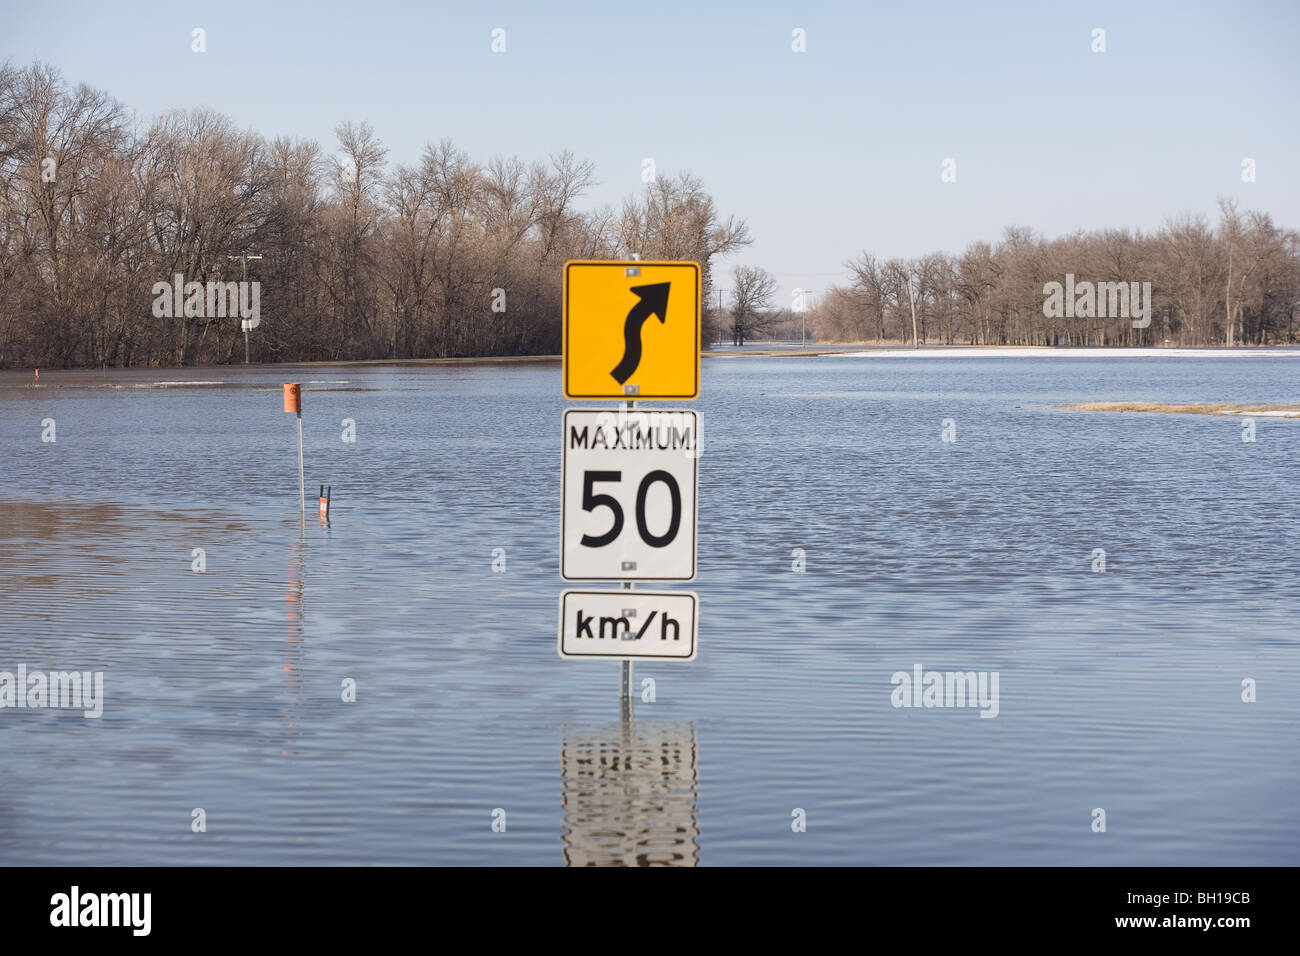 Road sign on road that is covered with floodwater from the Red River, Manitoba, Canada Stock Photo